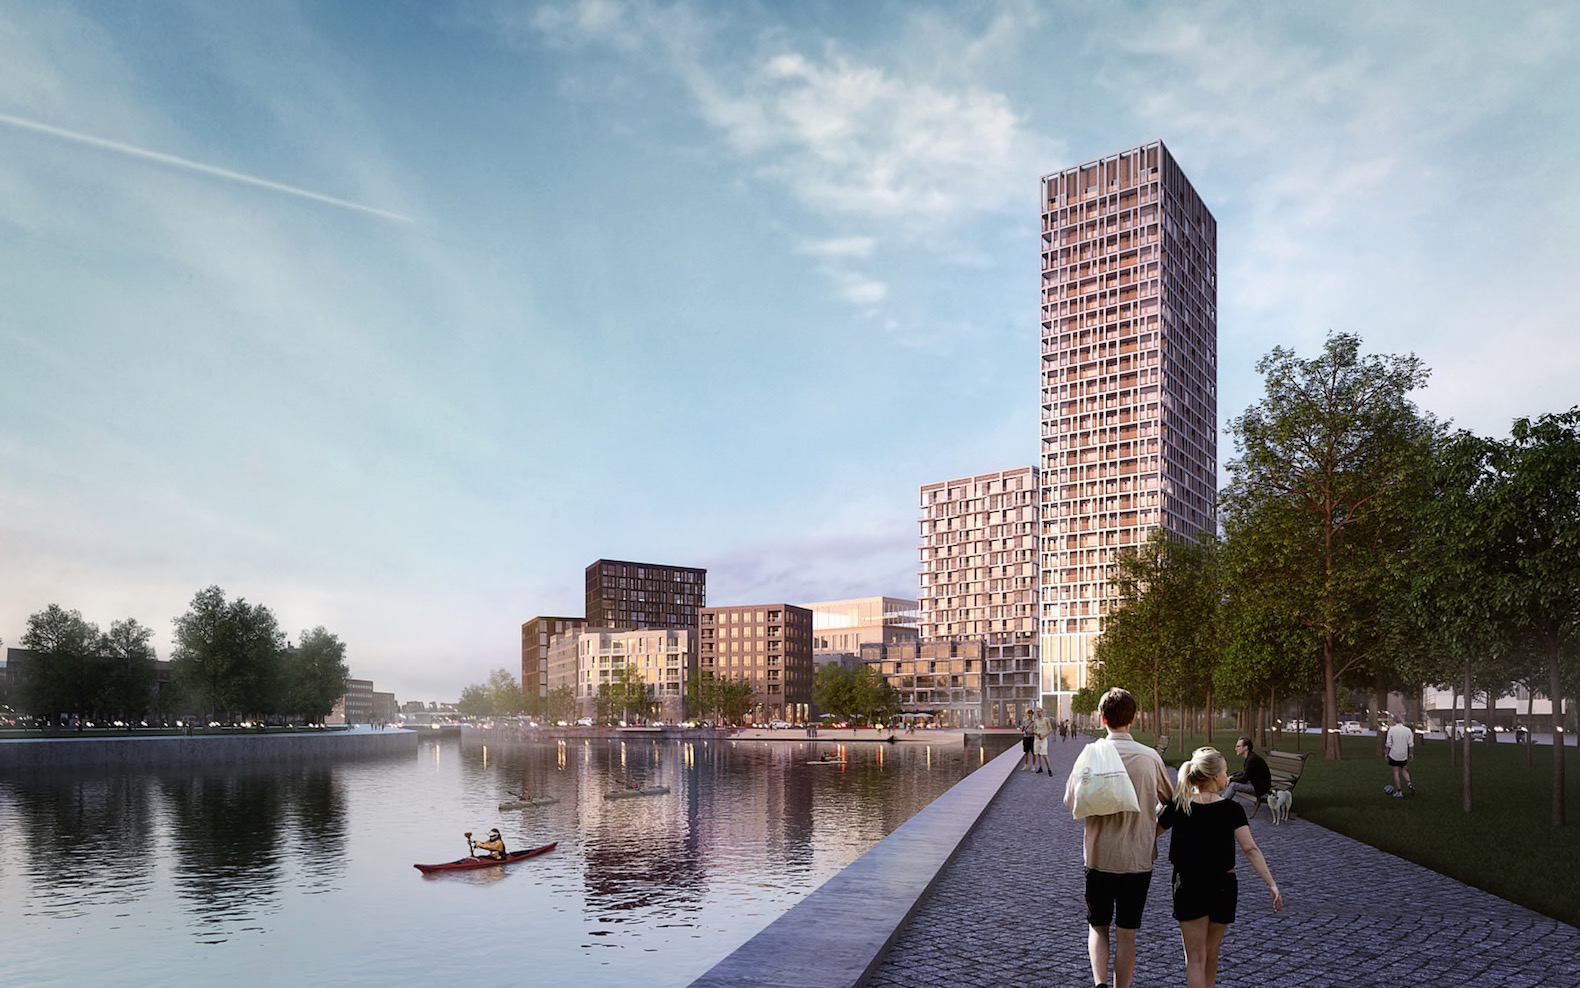 Henning Larsen to revitalize Brussels region with rooftop farming and co-housing